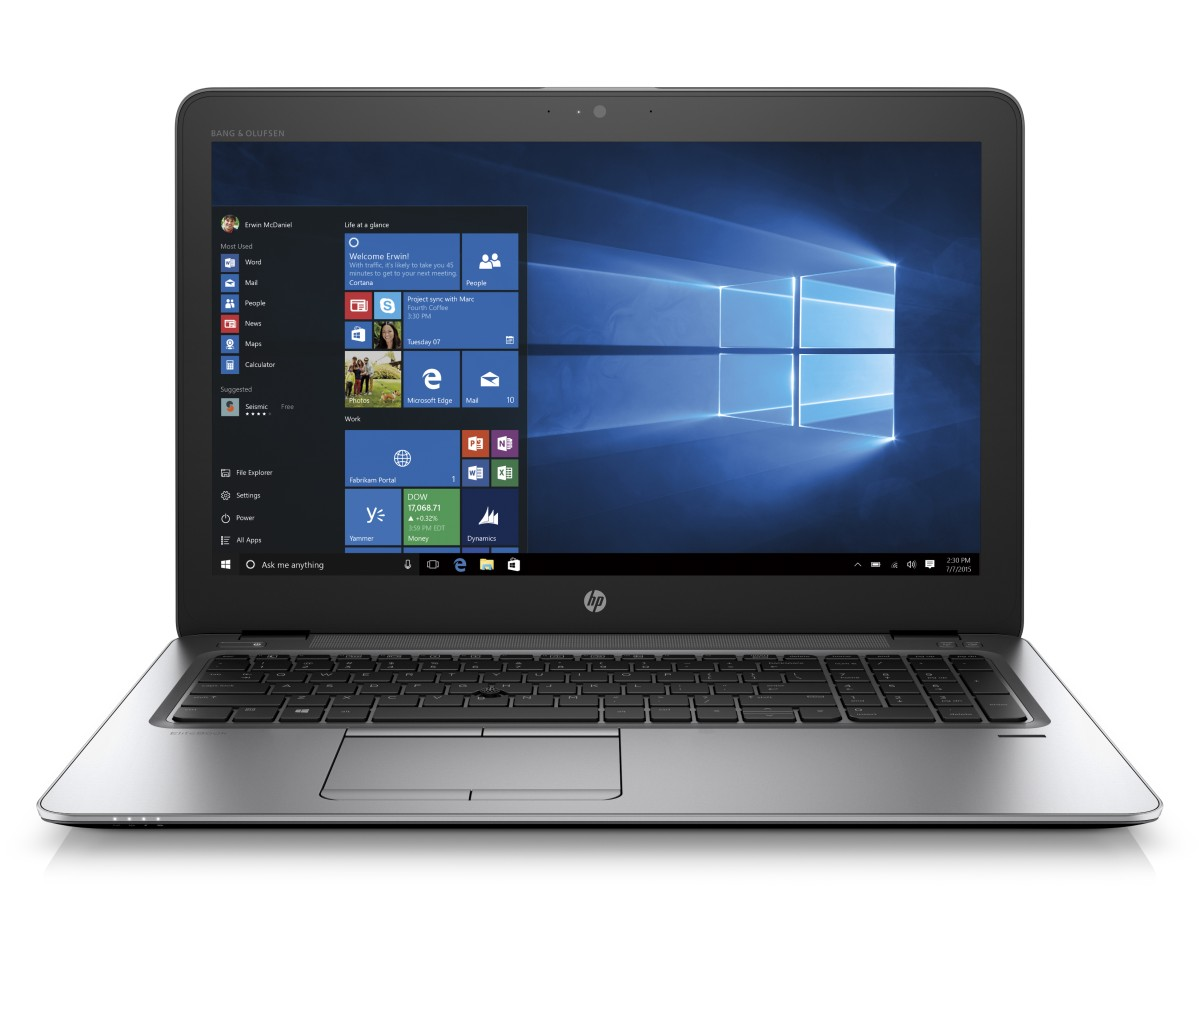 HP EliteBook 850 G4 i7-7500U 15.6FHD CAM,R7 M465/2GB,16GB,512GB TurboG2+volny 2,5,ac,BT,FpR,backlit keyb,lt4132,Win10Pro